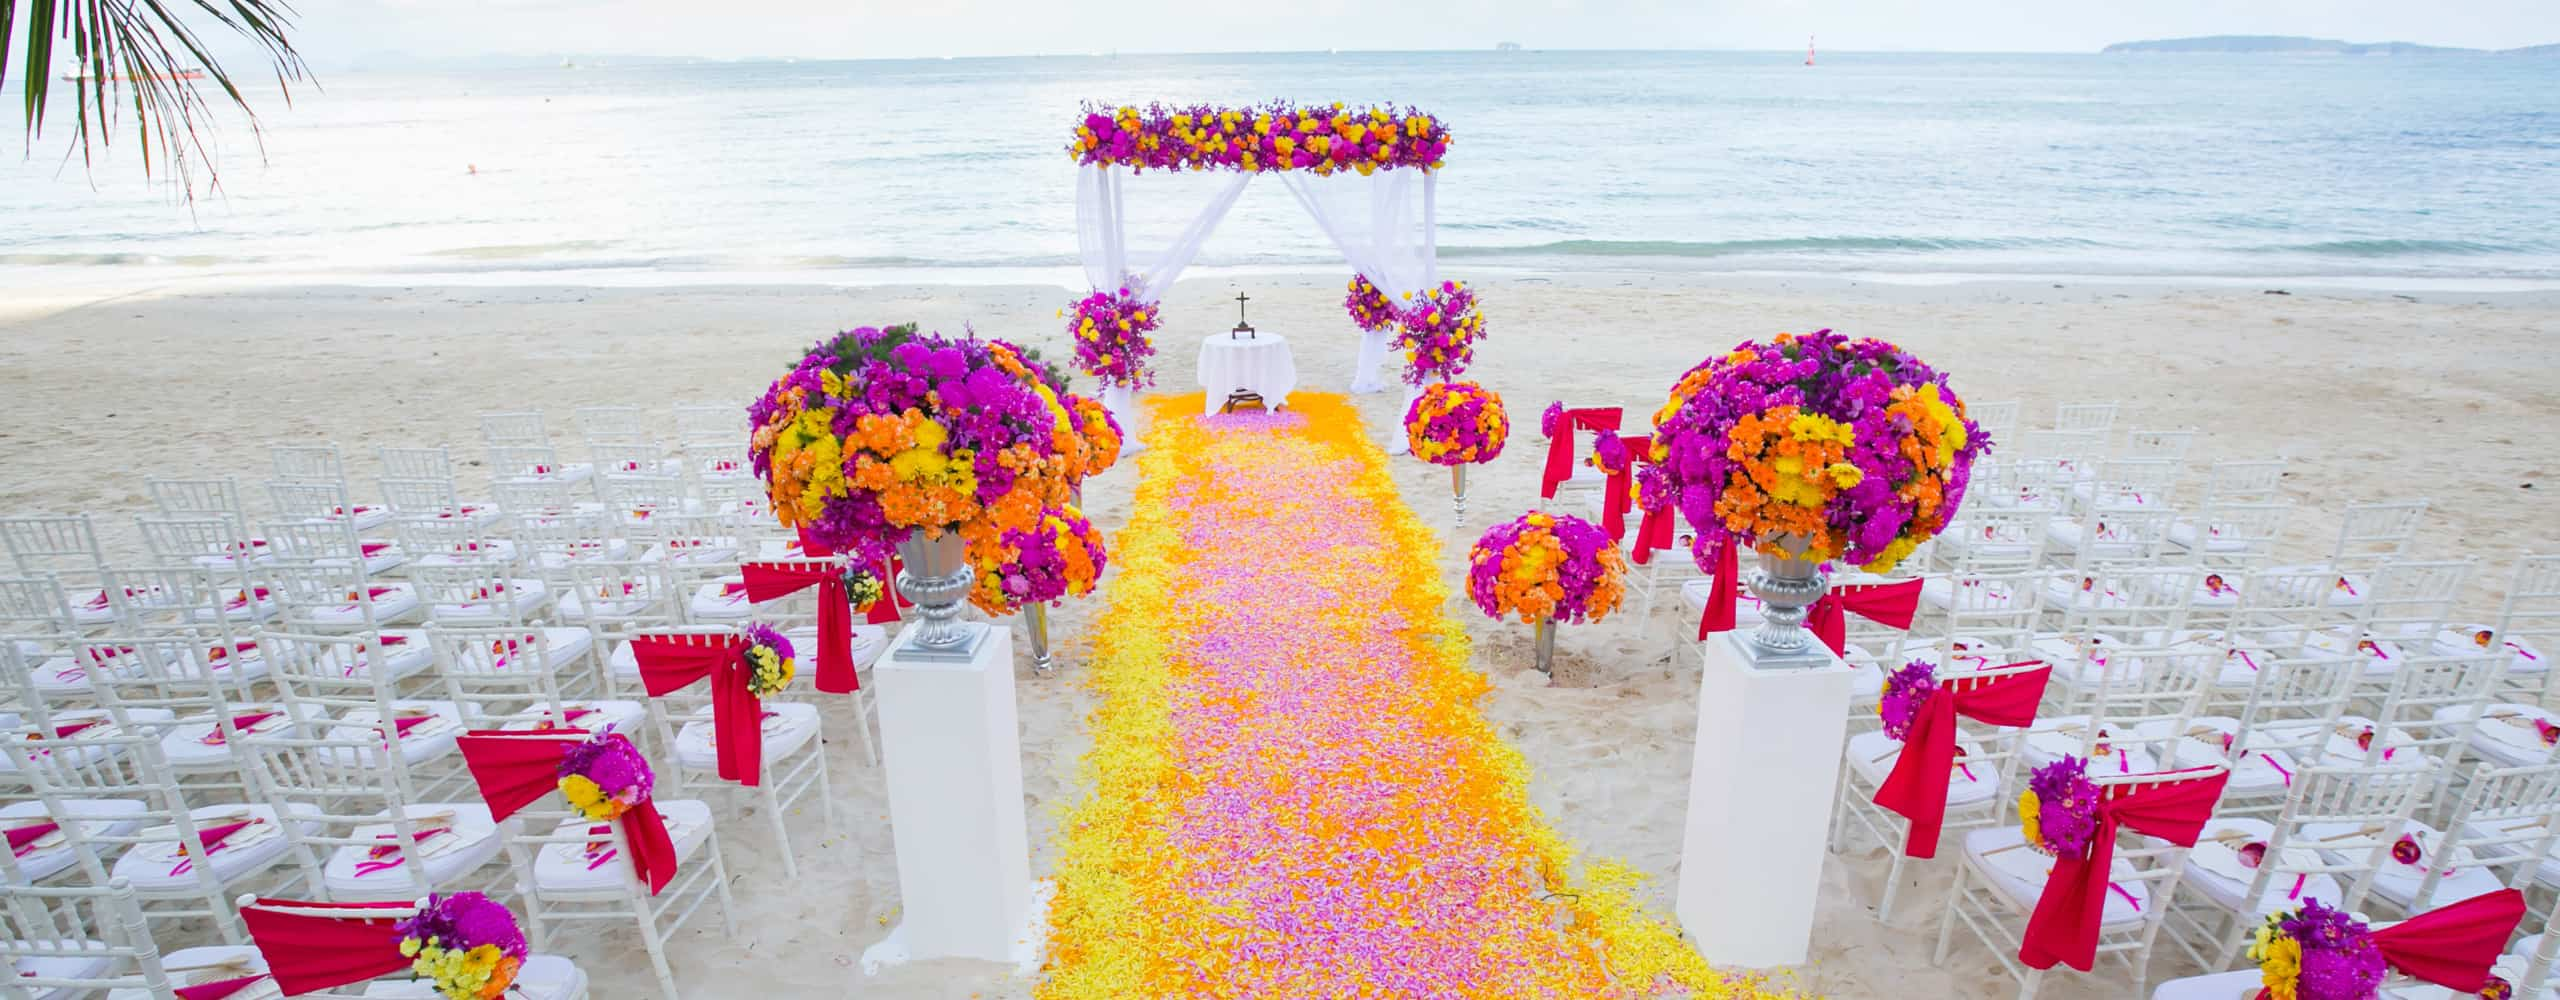 Destination Wedding Theme